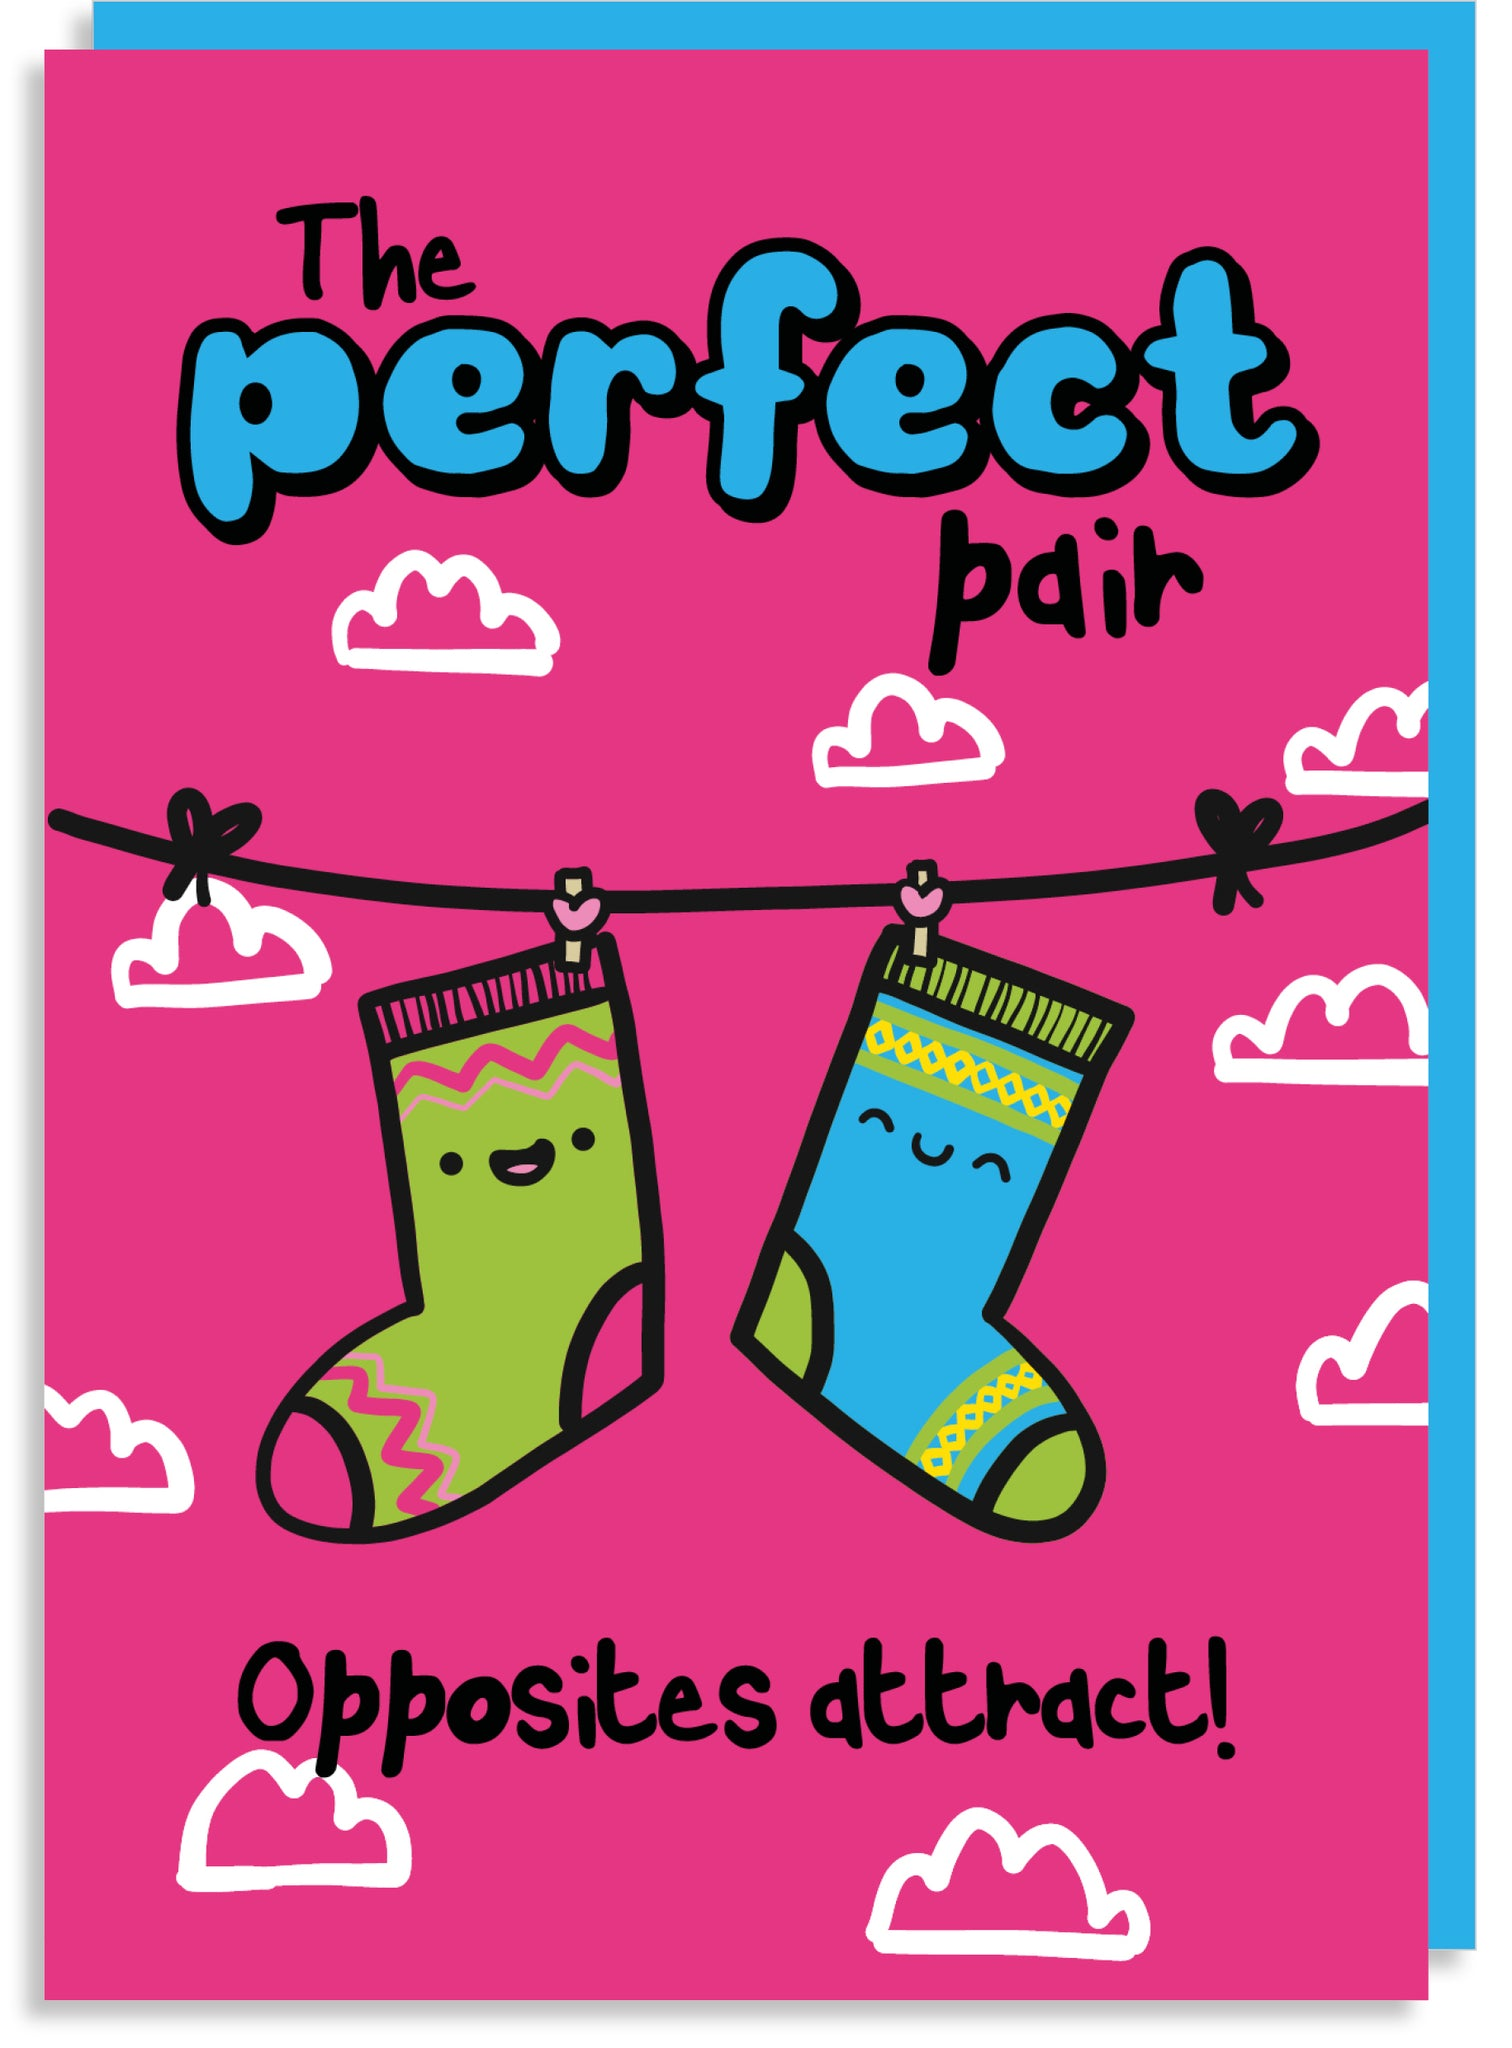 The perfect pair socks Valentine's card